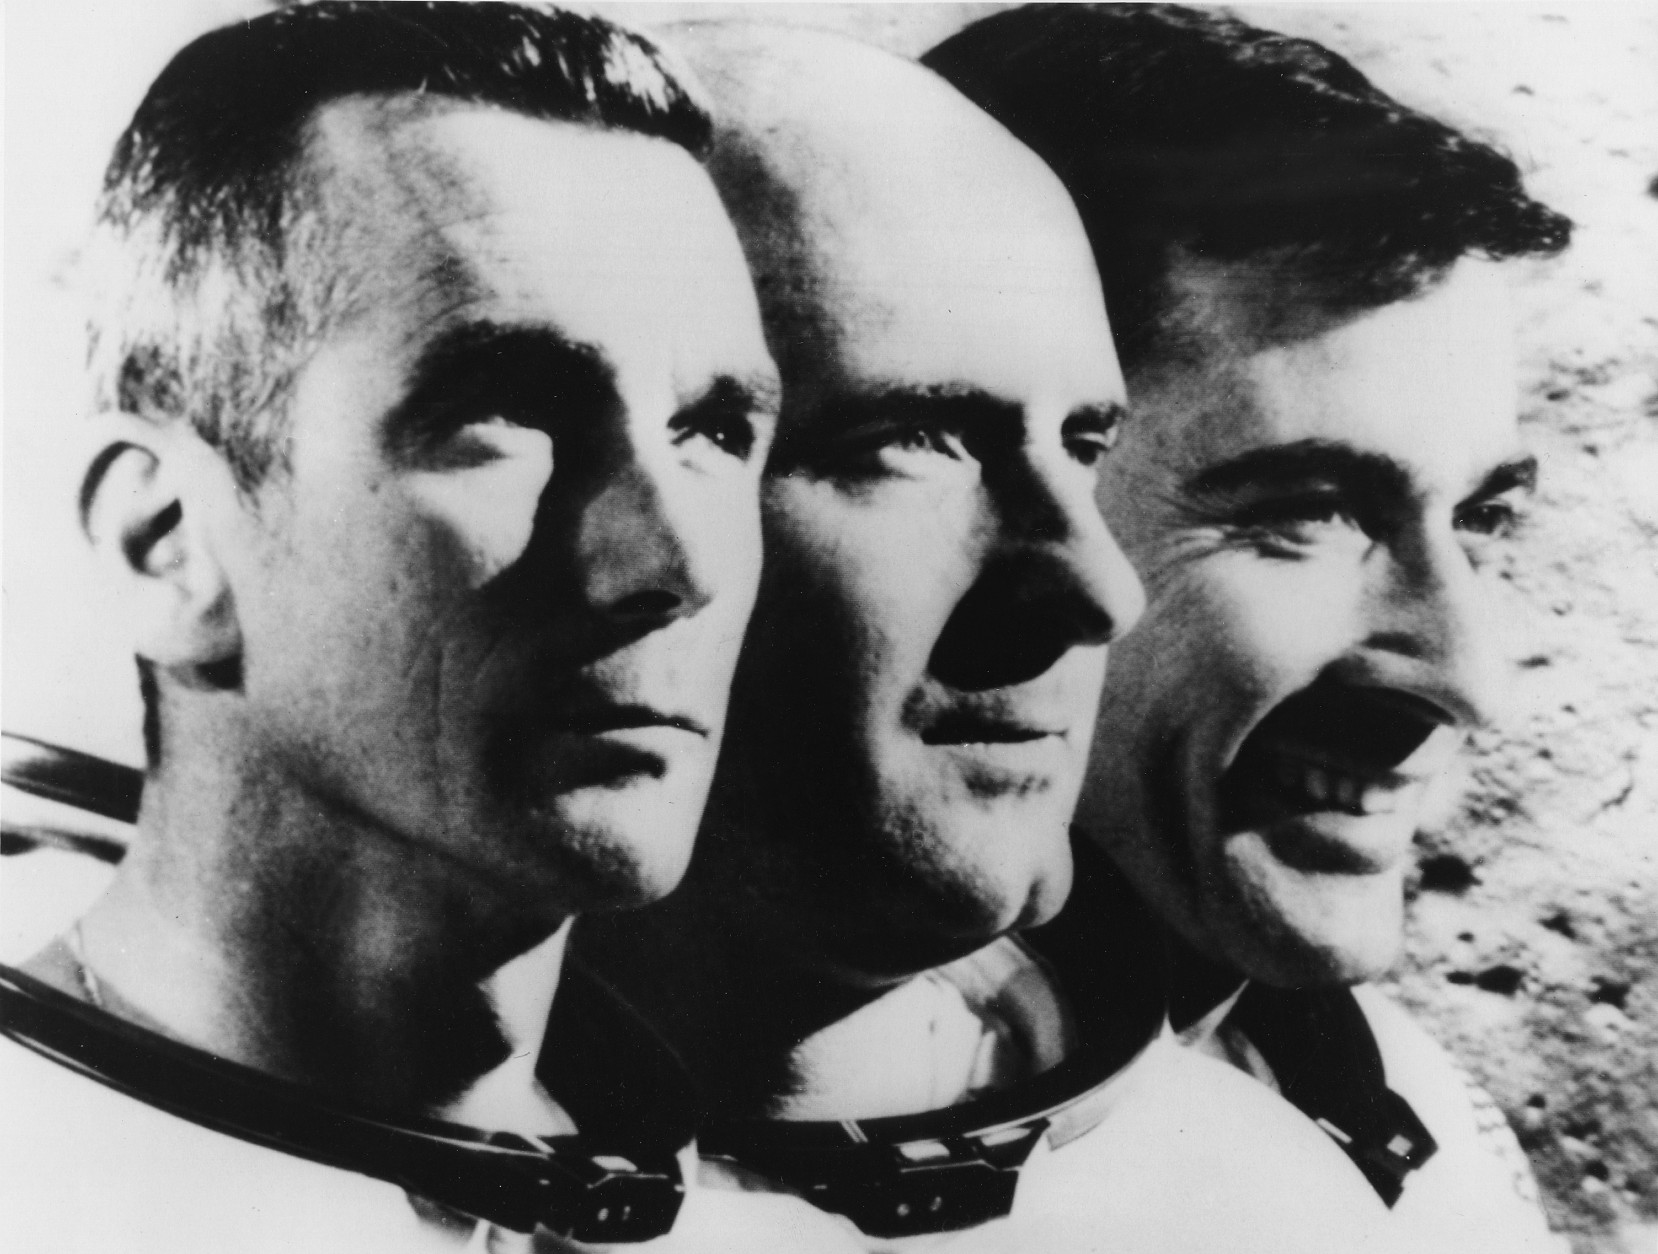 Image shows the three astronauts  of Apollo 10 from left to right.: Eugene A. Cernan, Commander Stafford, John W. Young, USA, May 1969.  (AP Photo)